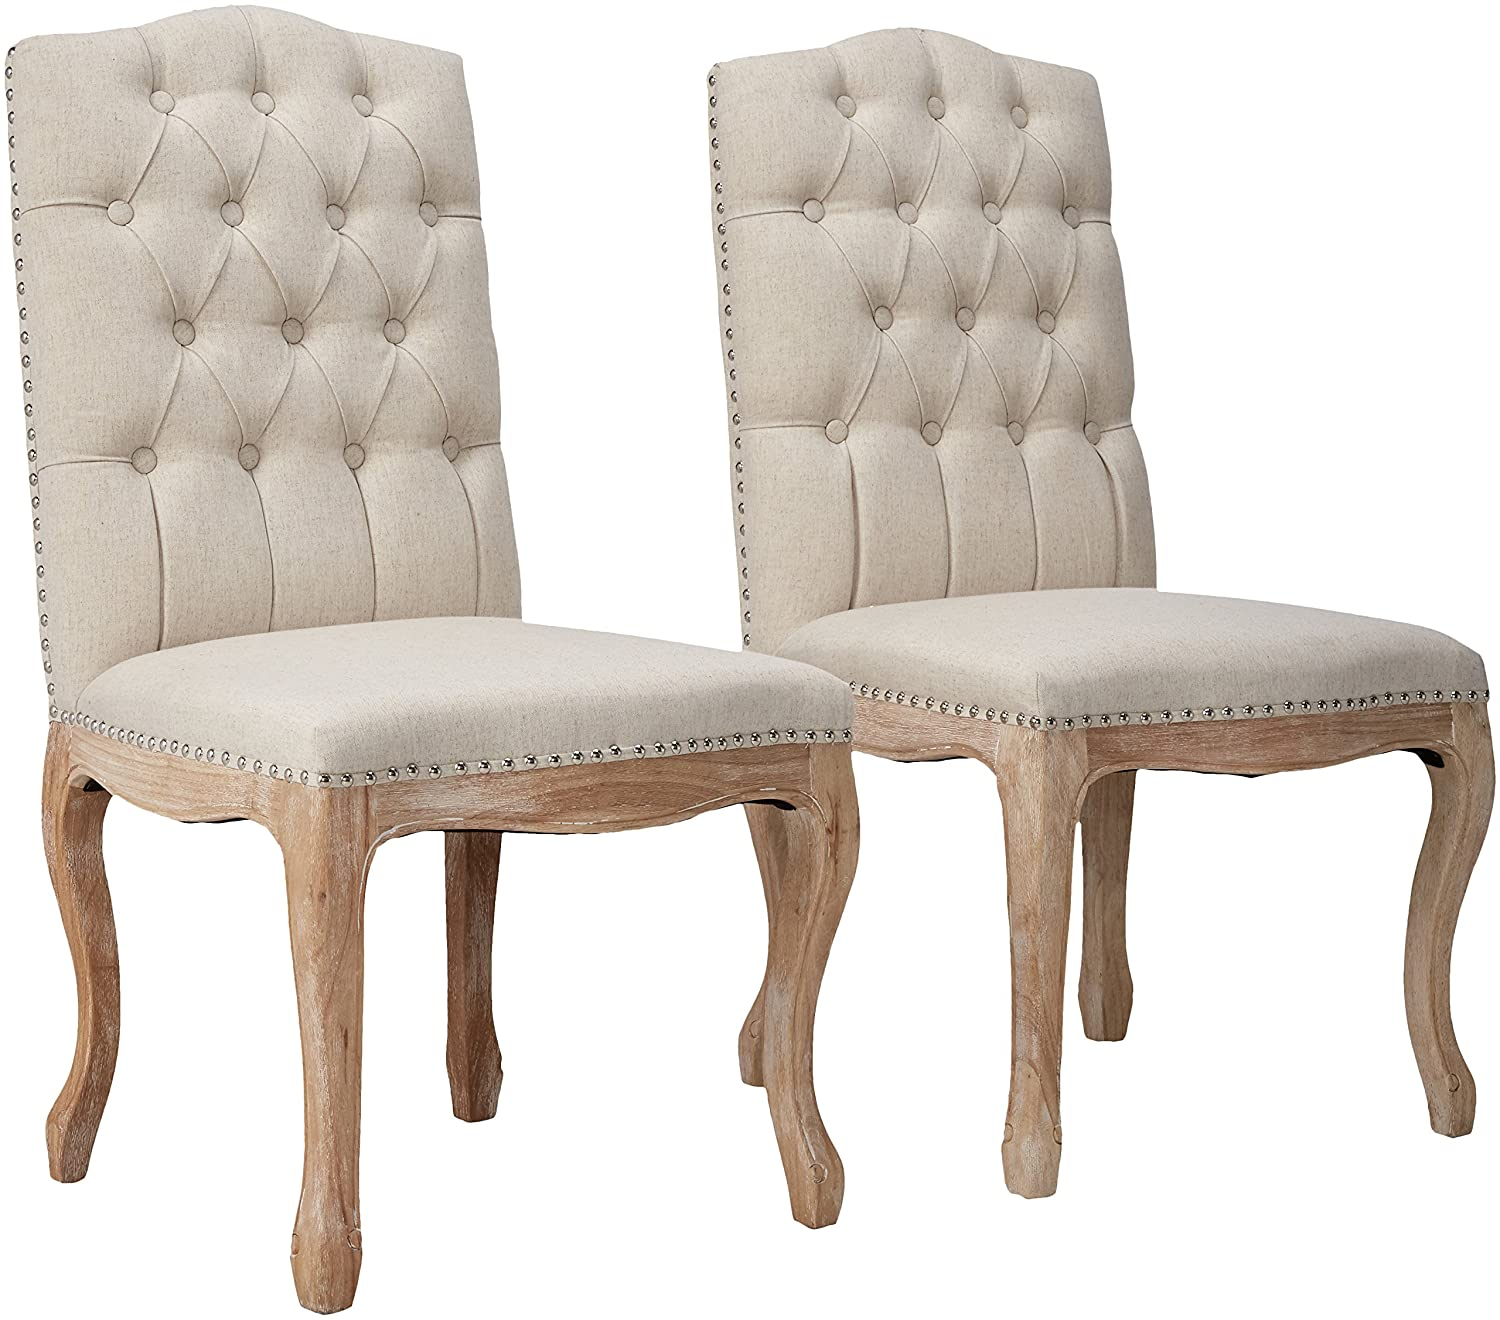 Amazon com best selling tufted fabric weathered hardwood dining chair beige set of 2 chairs